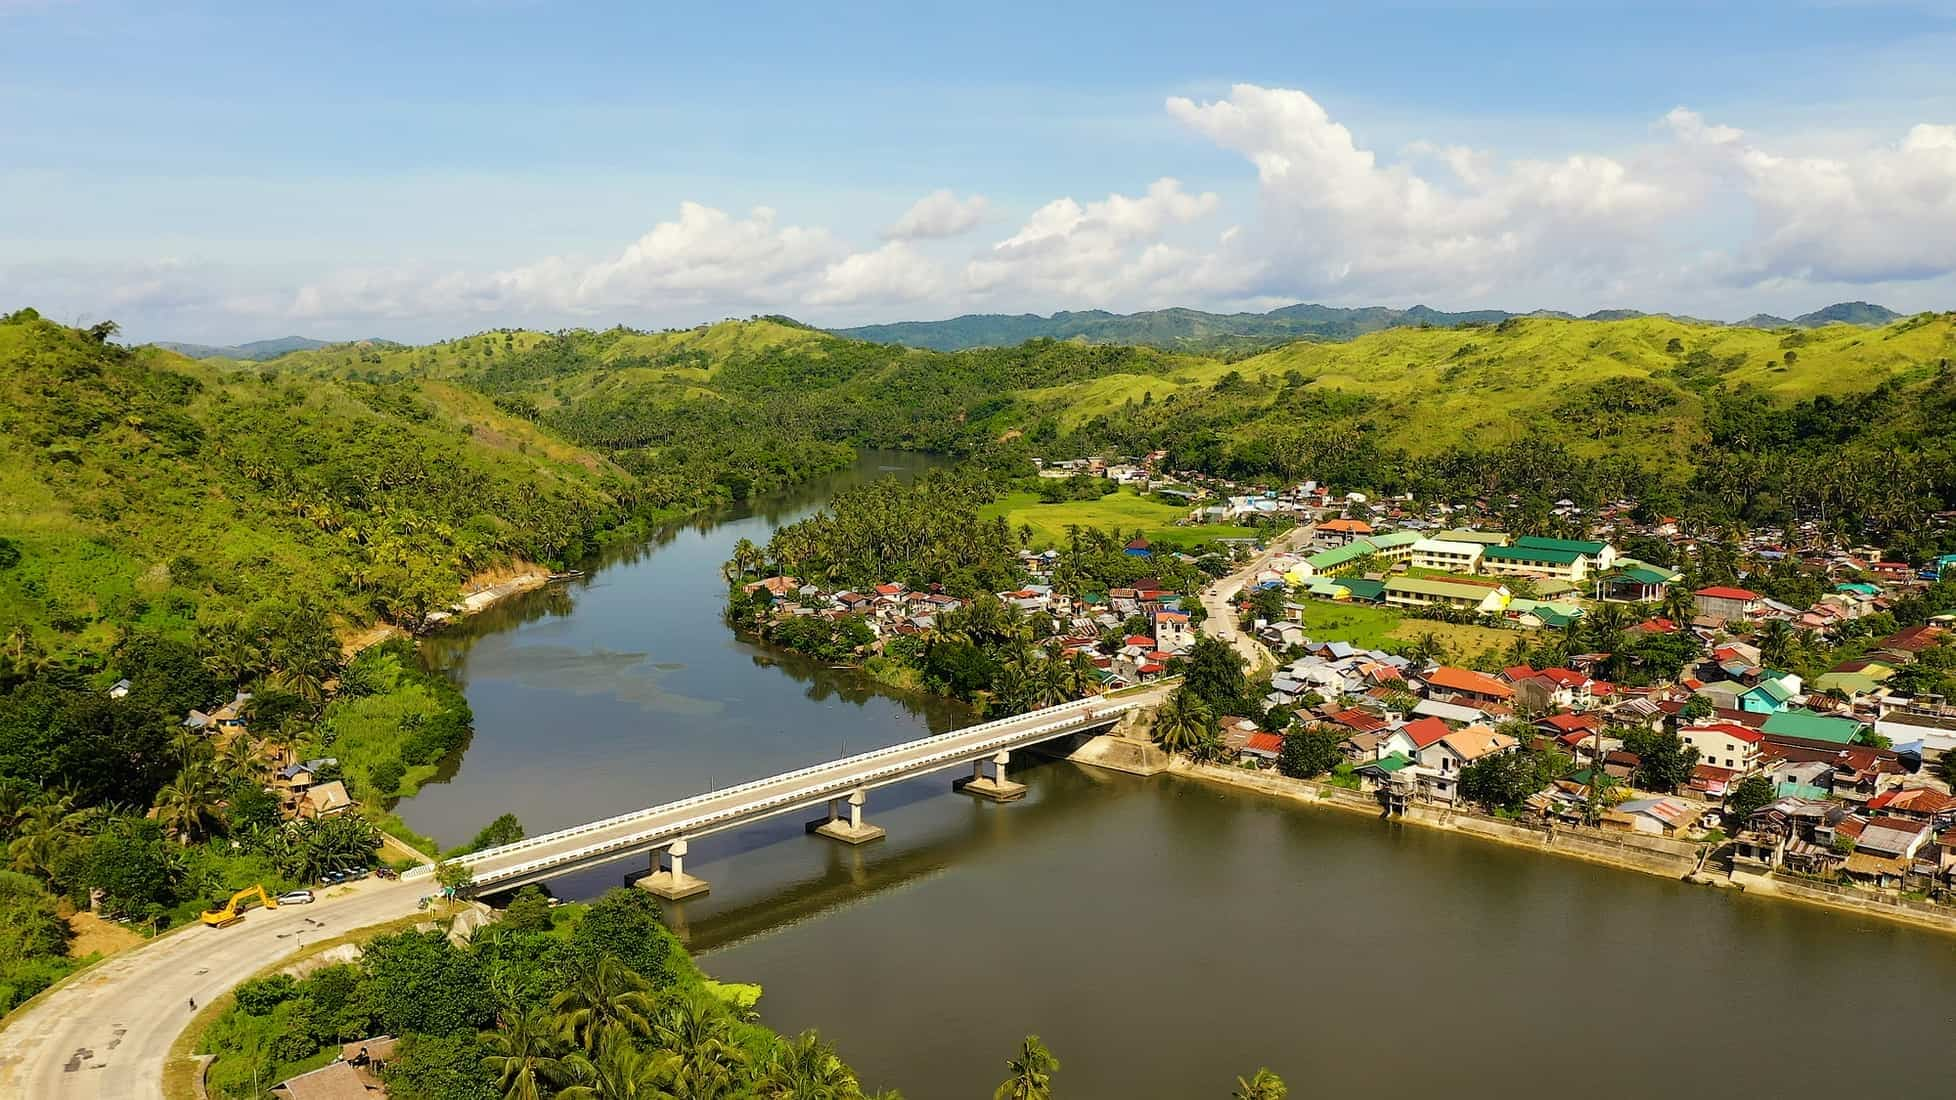 Road bridge on the island of Samar, Philippines.Town on the river bank and road bridge, top view. Bridge over the river, tropical landscape in the afternoon.